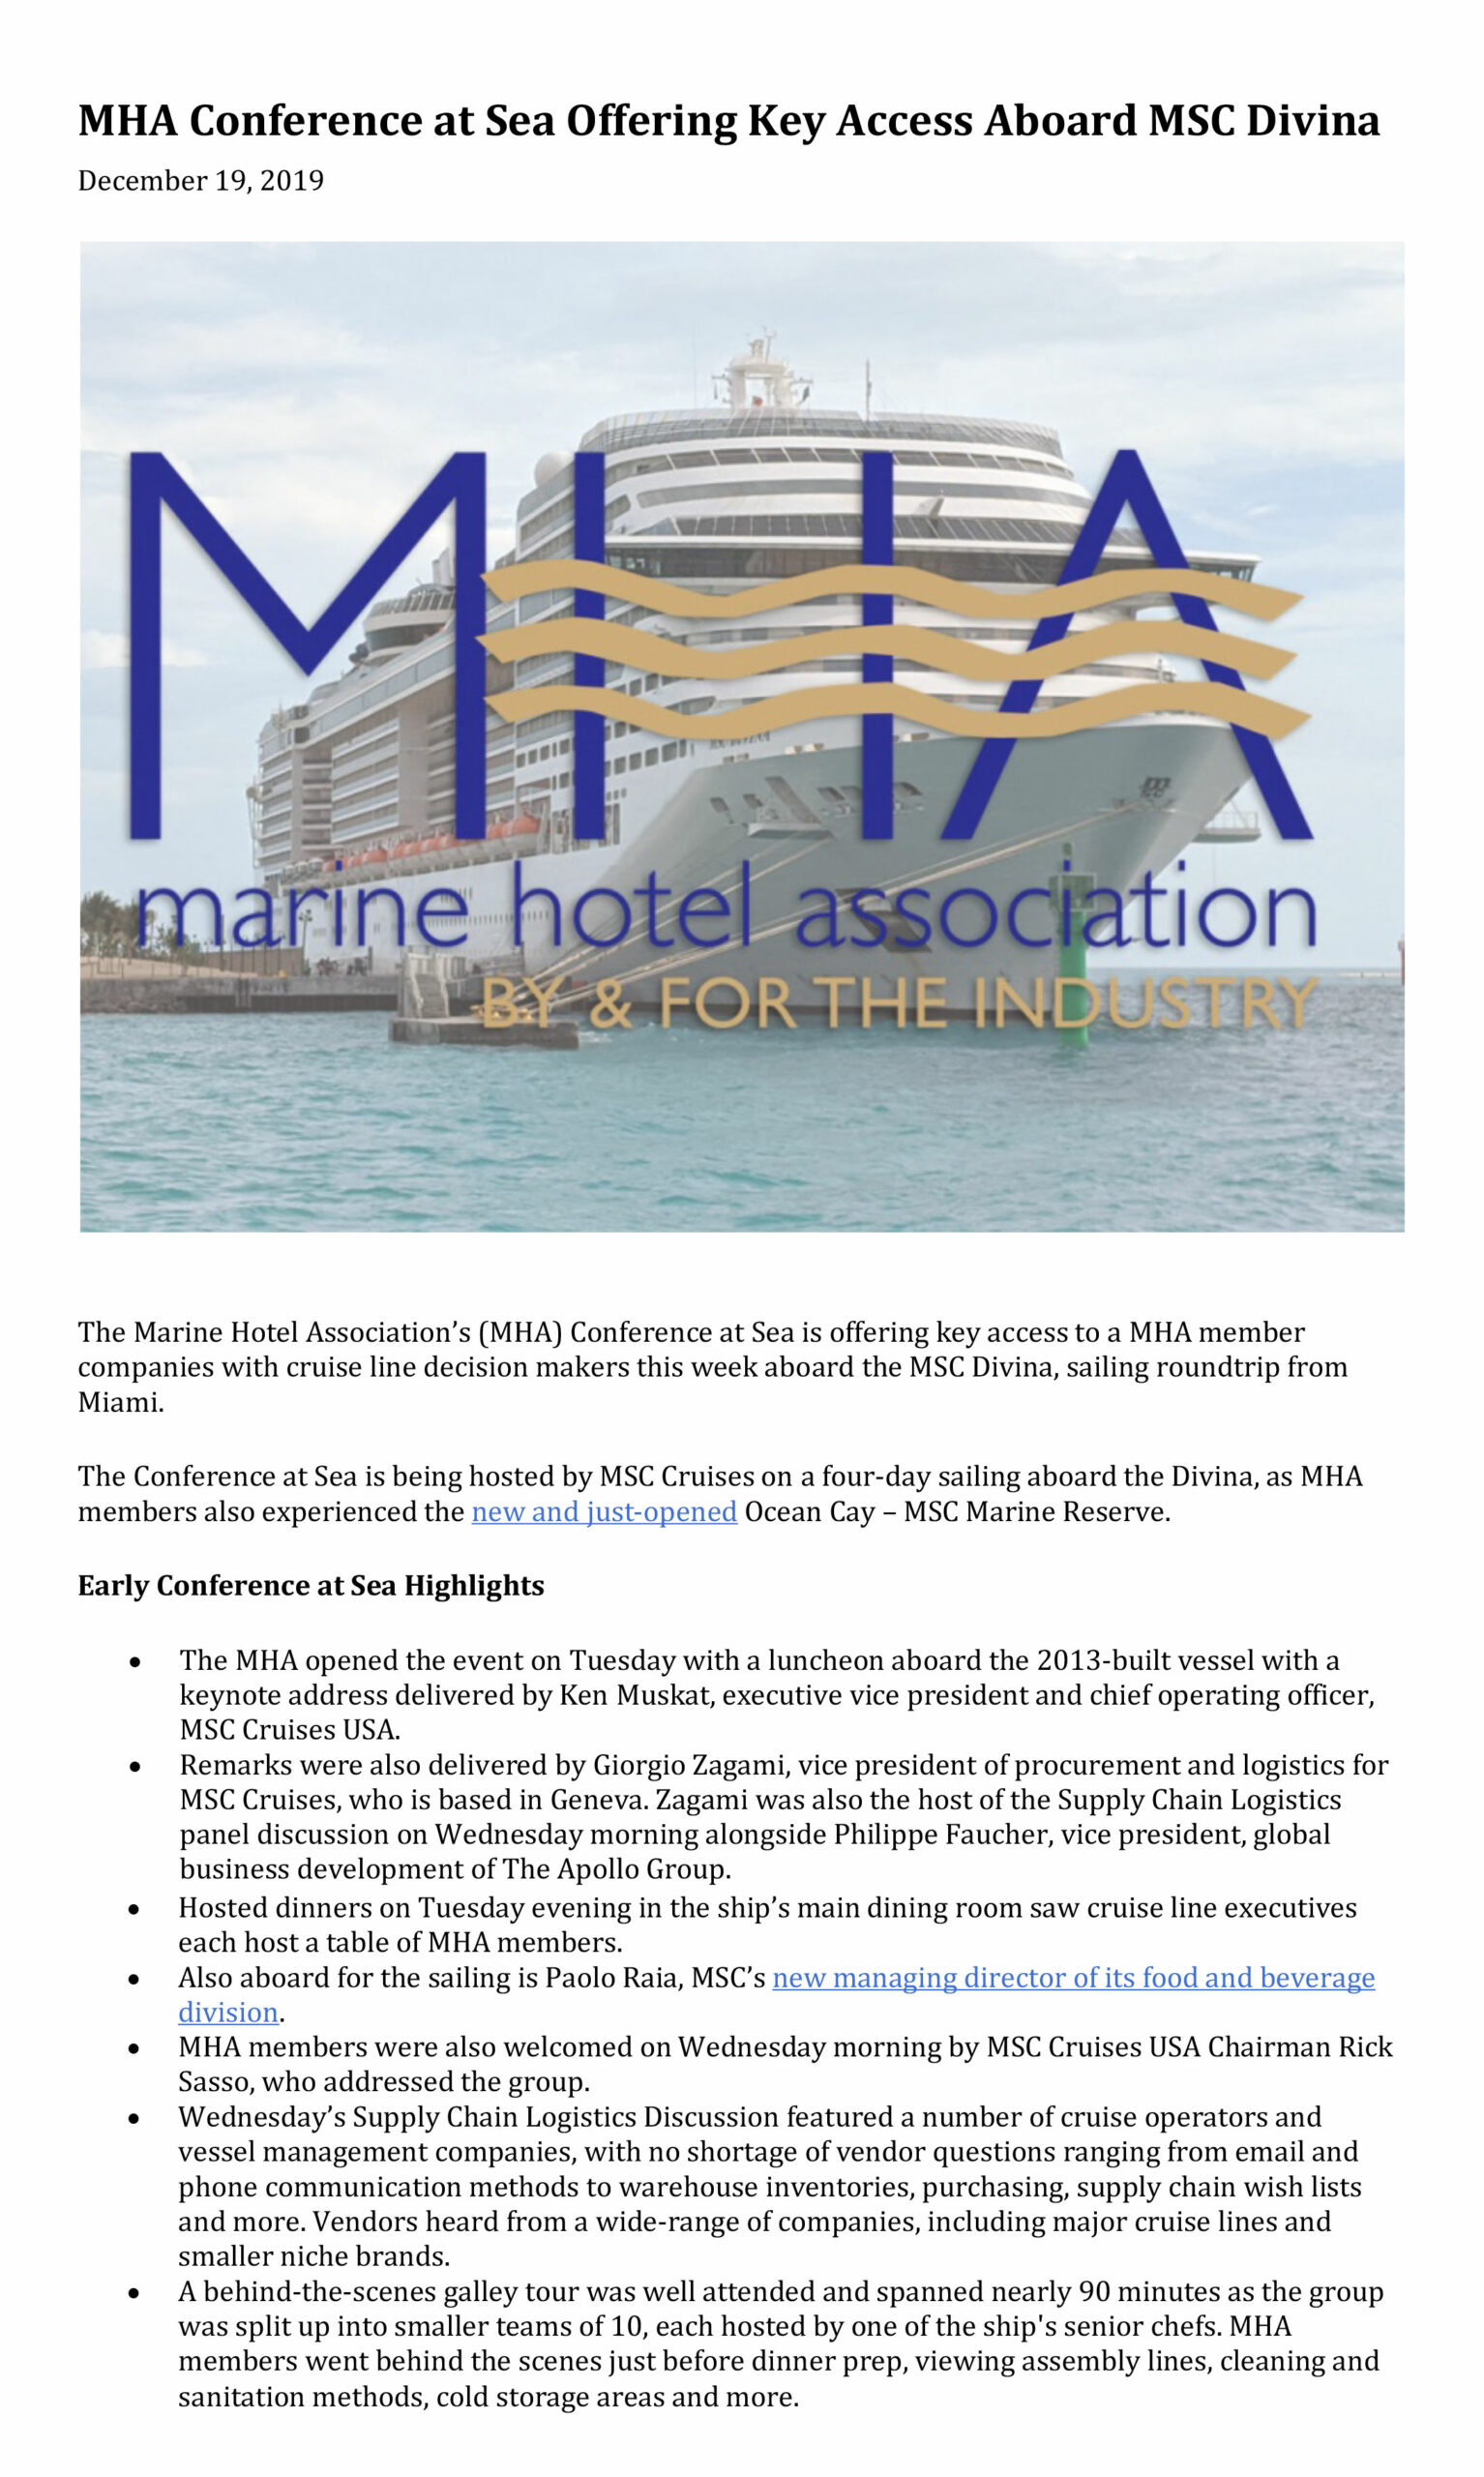 MHA-Conference-at-Sea-Offering-Key-Access-Aboard-MSC-Divina